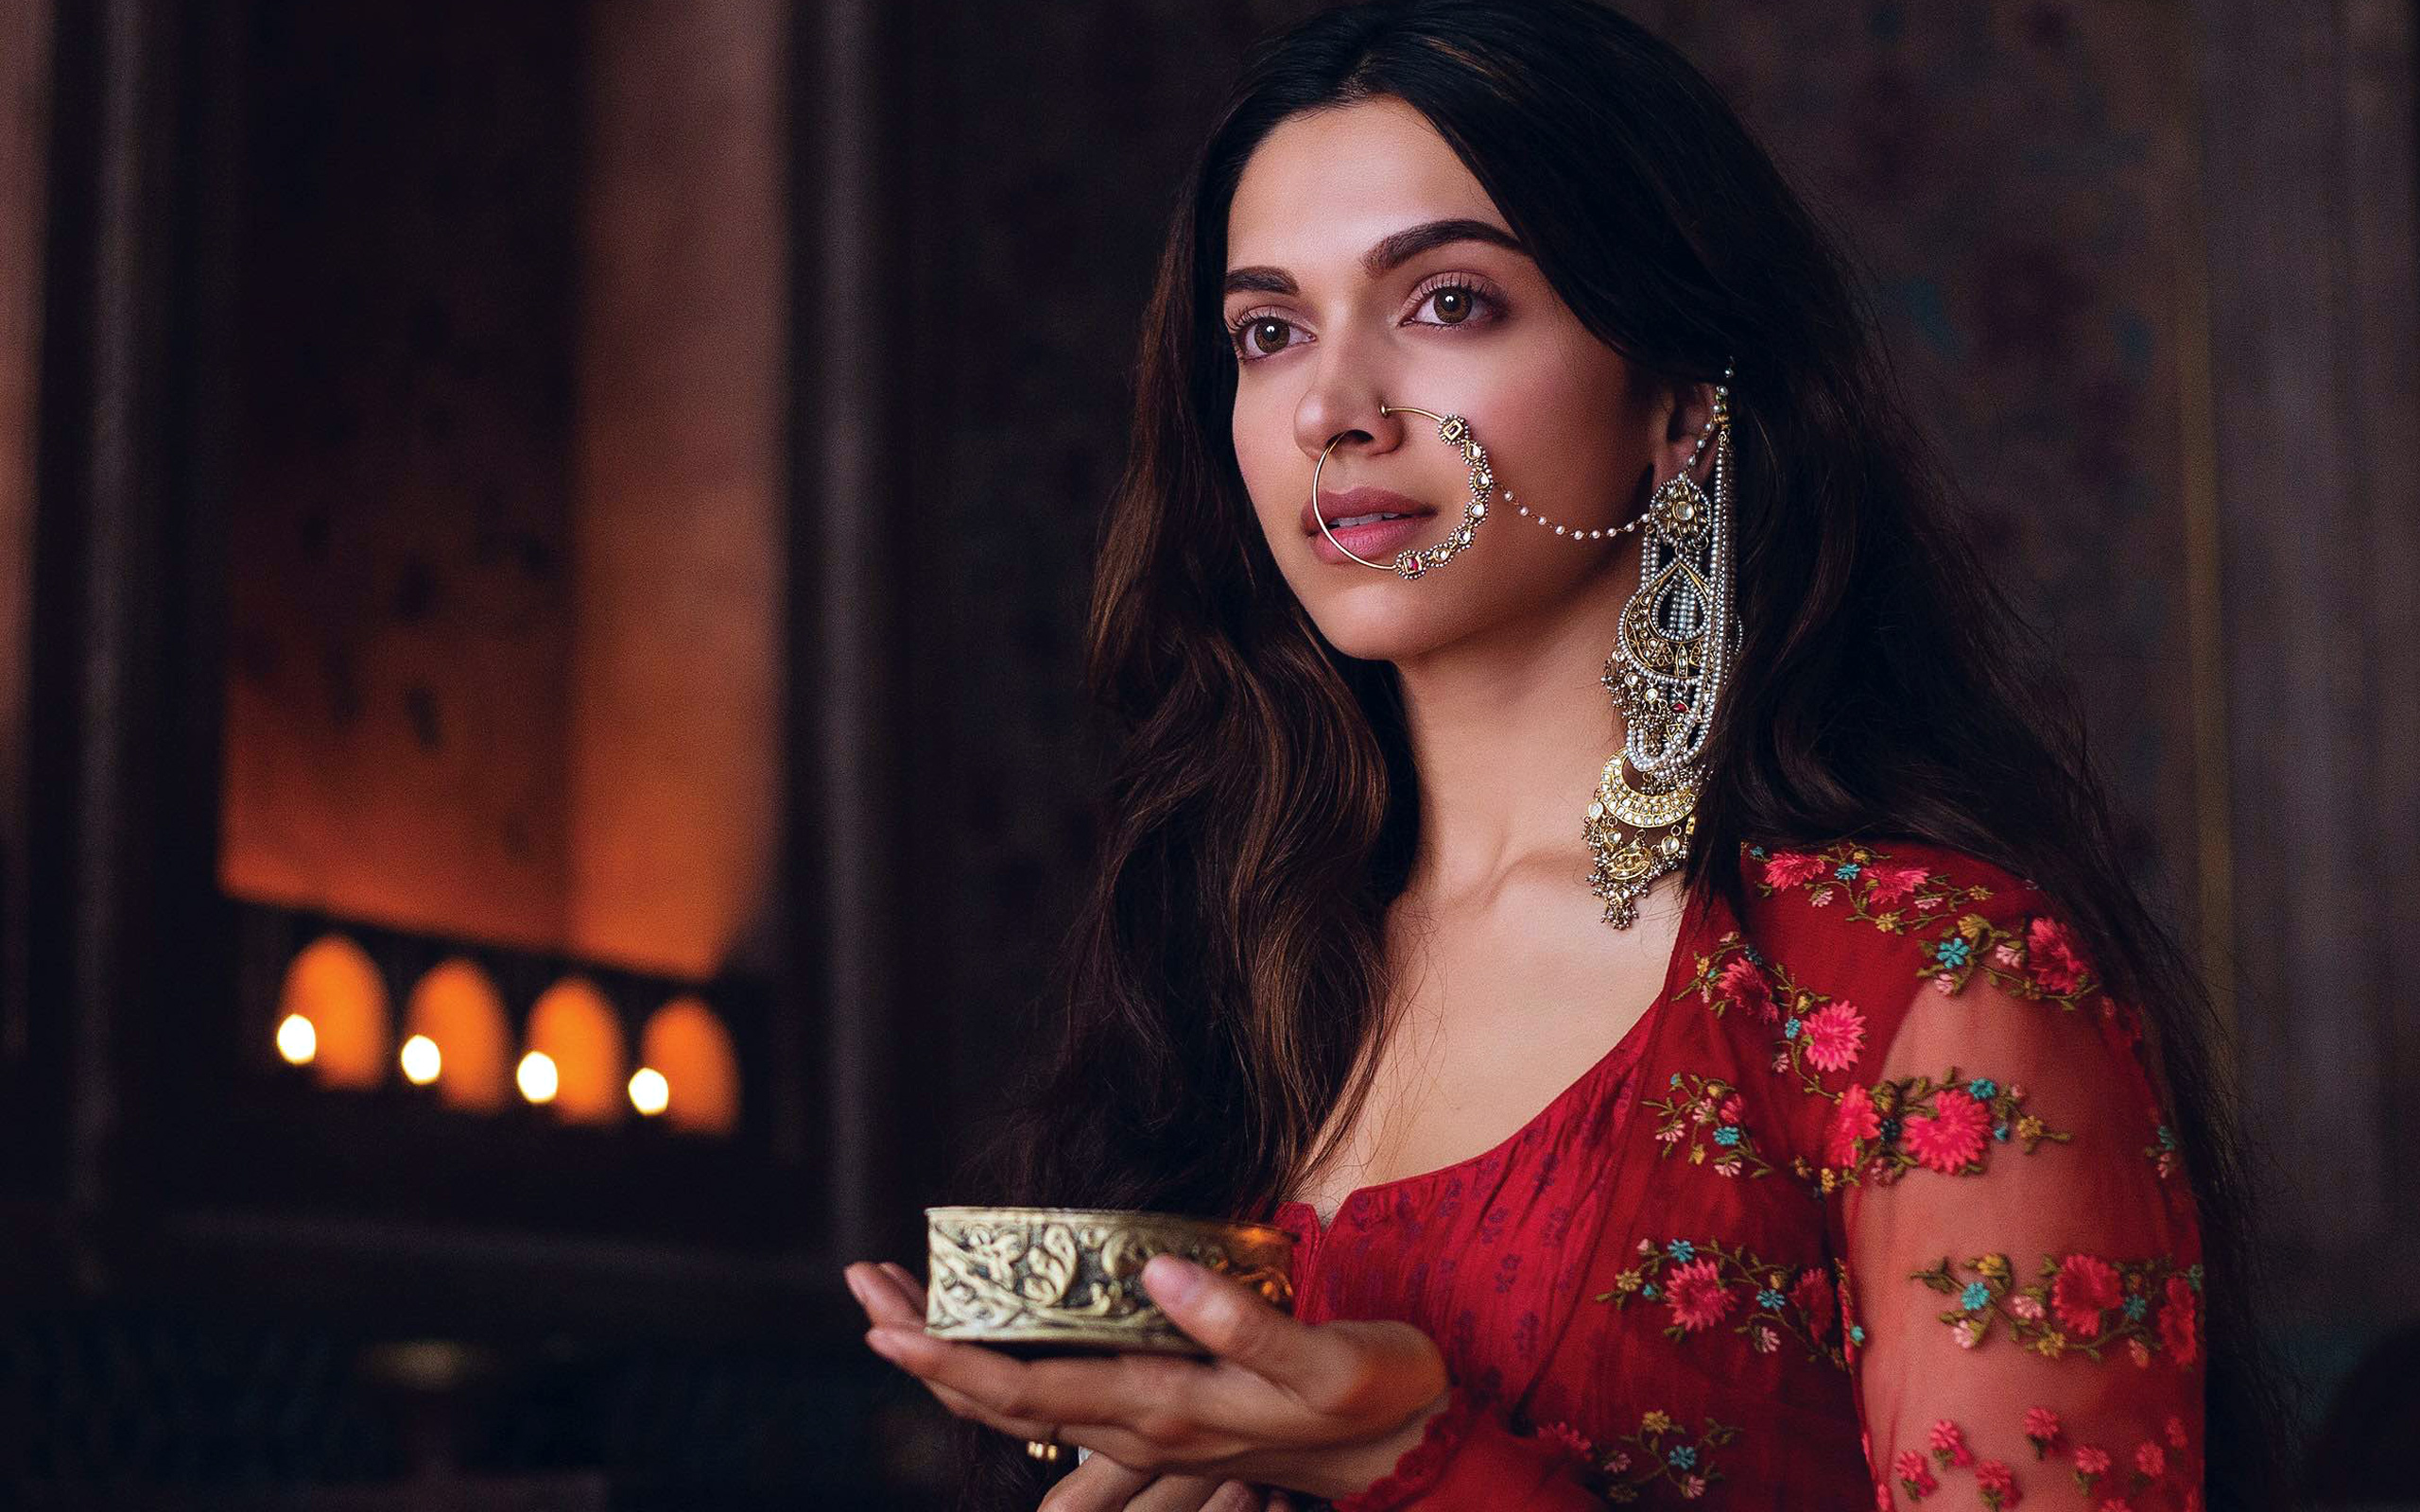 Deepika Padukone Hd Wallpapers For Iphone Deepika Padukone As Mastani Wallpapers Hd Wallpapers